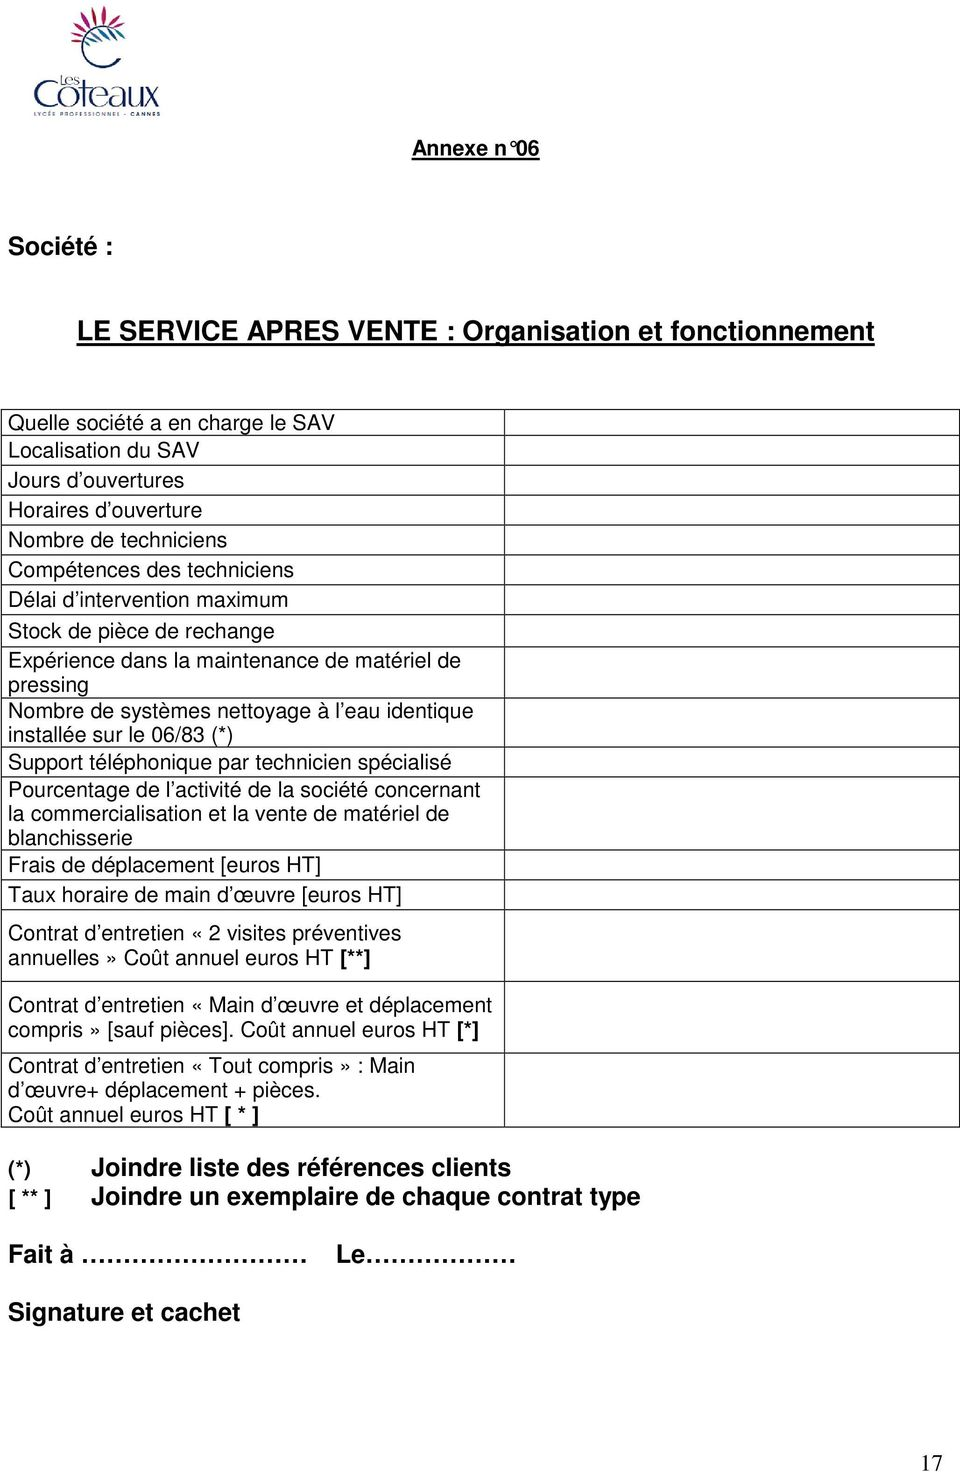 C c a p cahier des clauses administratives particuli res for Taux horaire main d oeuvre garage